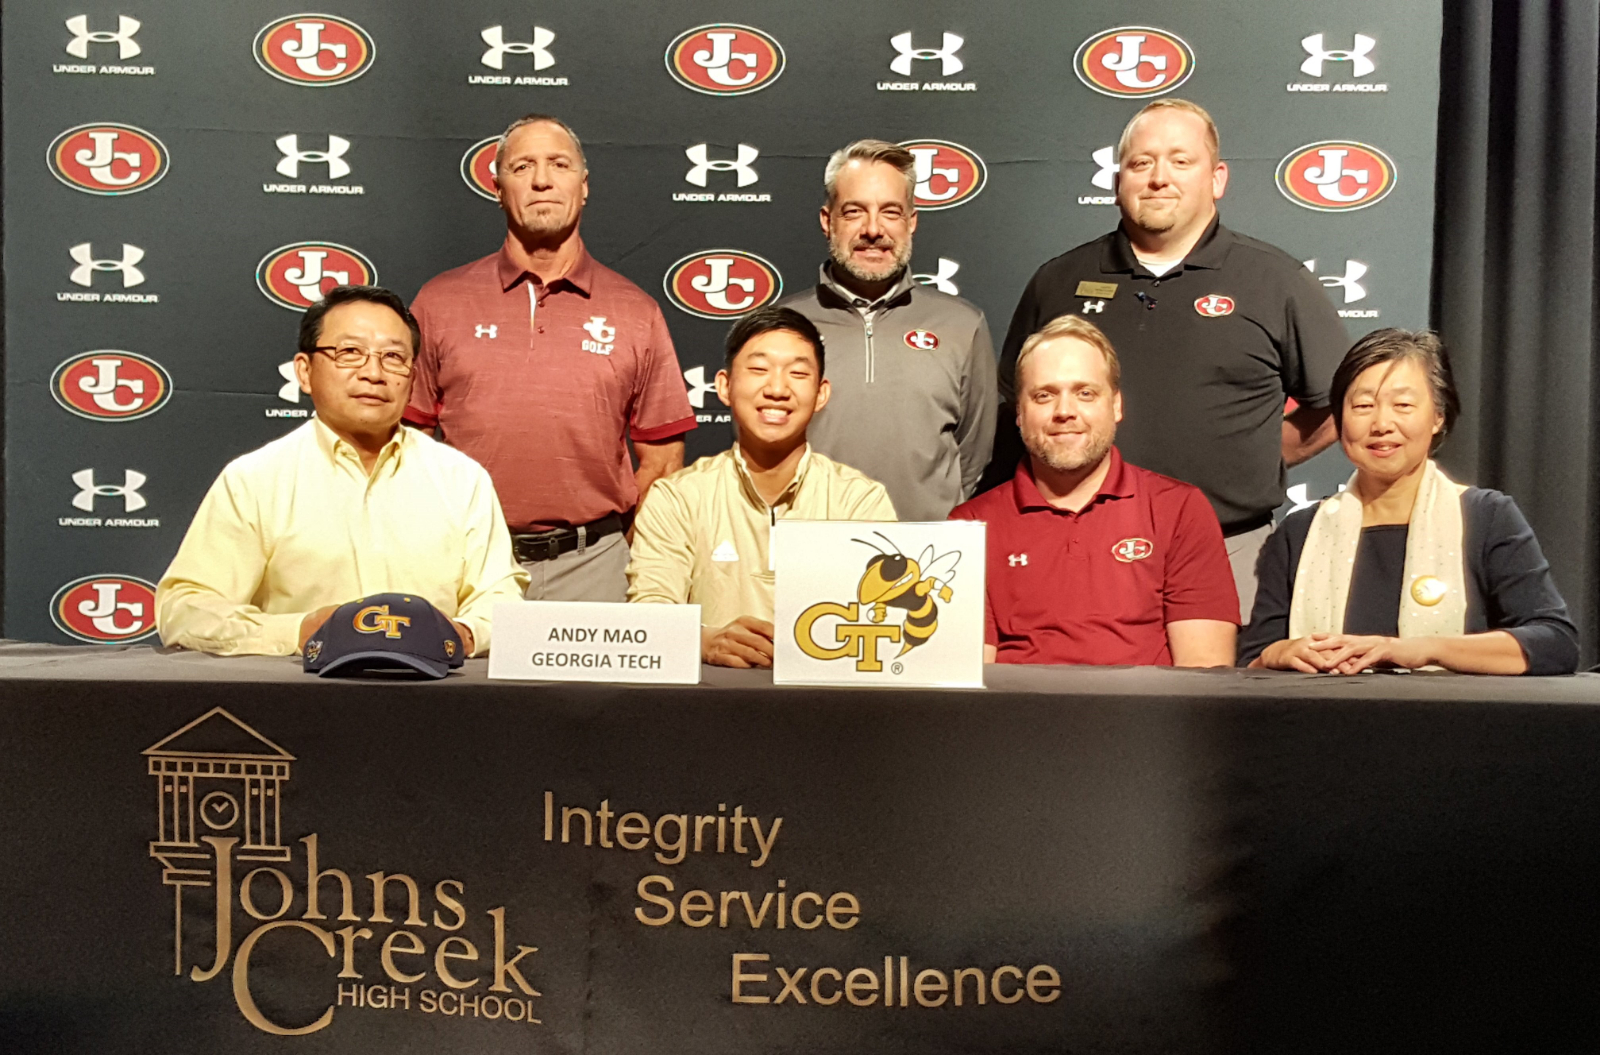 Andy Mao to play golf at Georgia Tech